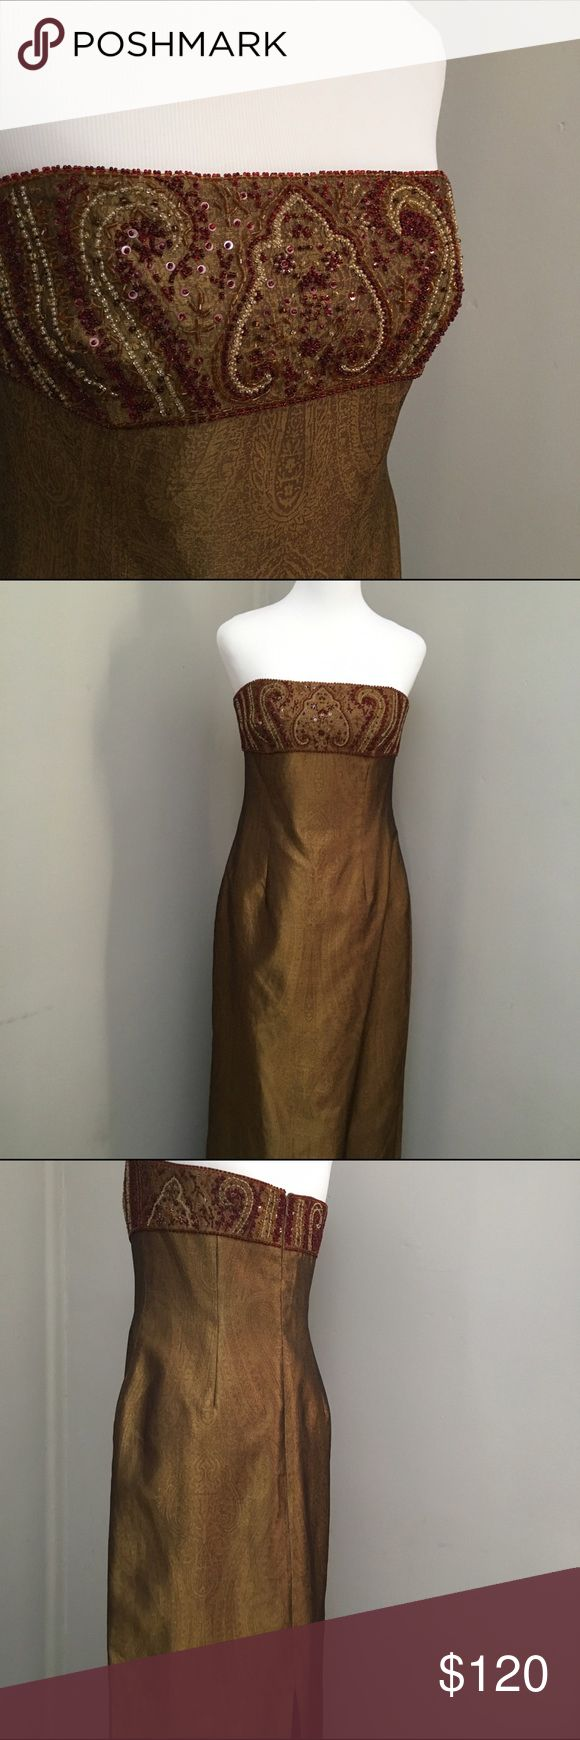 Kay Unger Formal Brocade Gold Gown This Kay Unger full length formal gown is made from beautiful textured gold silk. It is strapless and has rich red and gold beading and sequins. The back has a slit. Size 10. Kay Unger Dresses Strapless